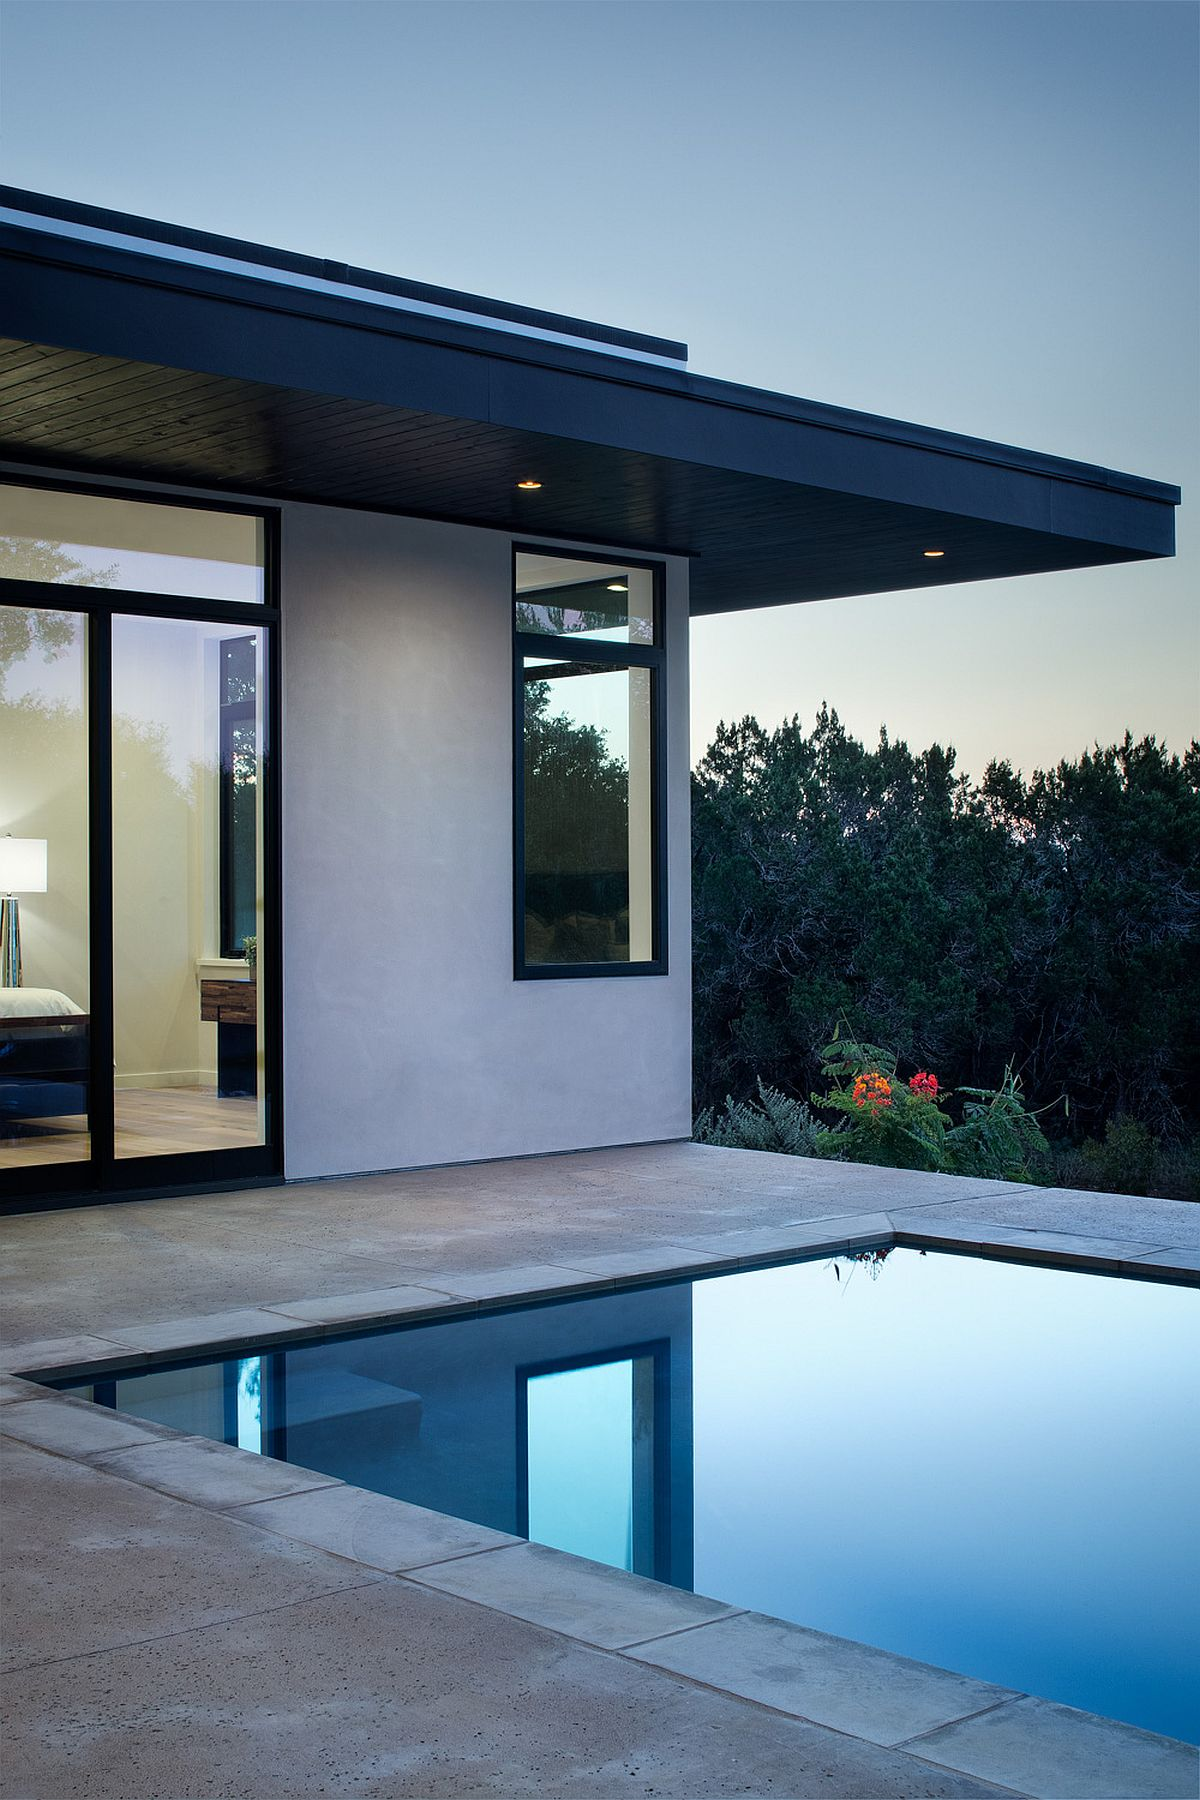 Master suite of the home with access to the pool area offers mesmerizing views